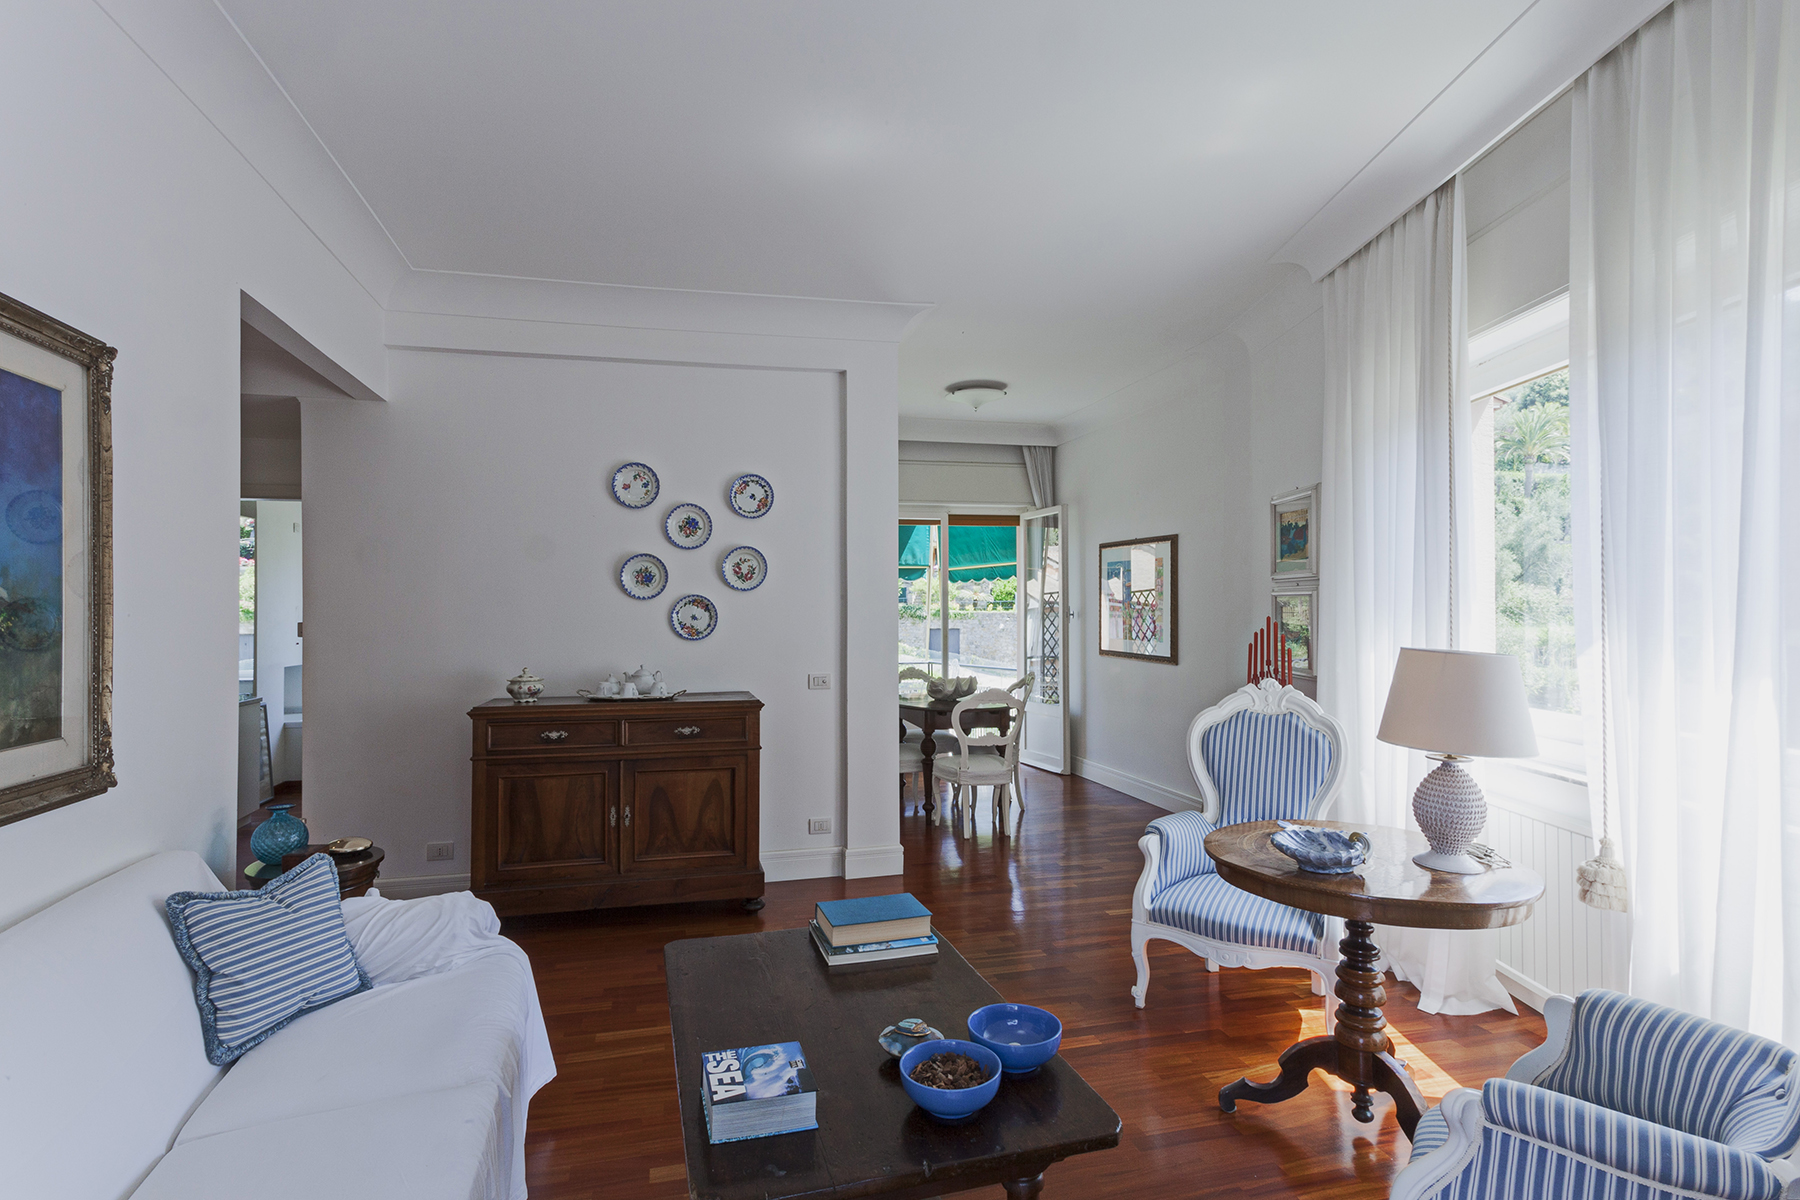 Single Family Home for Sale at Elegant apartment recently renovated in the heart of Santa Margherita Via Madonnetta Santa Margherita Ligure, 16038 Italy